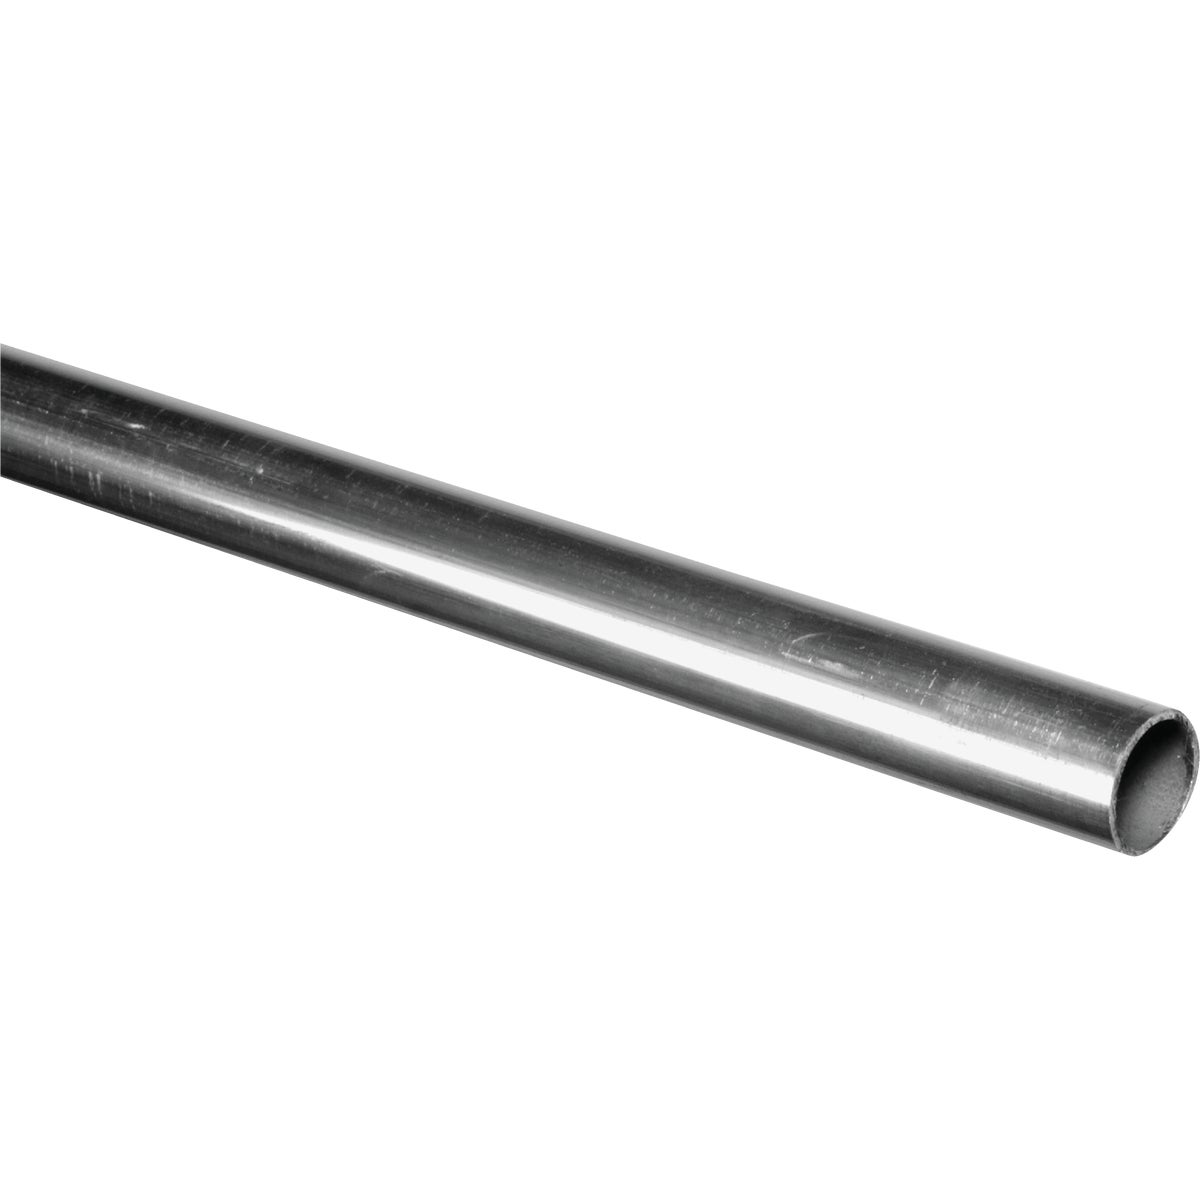 1/6' ALUM ROUND TUBE - N247593 by National Mfg Co